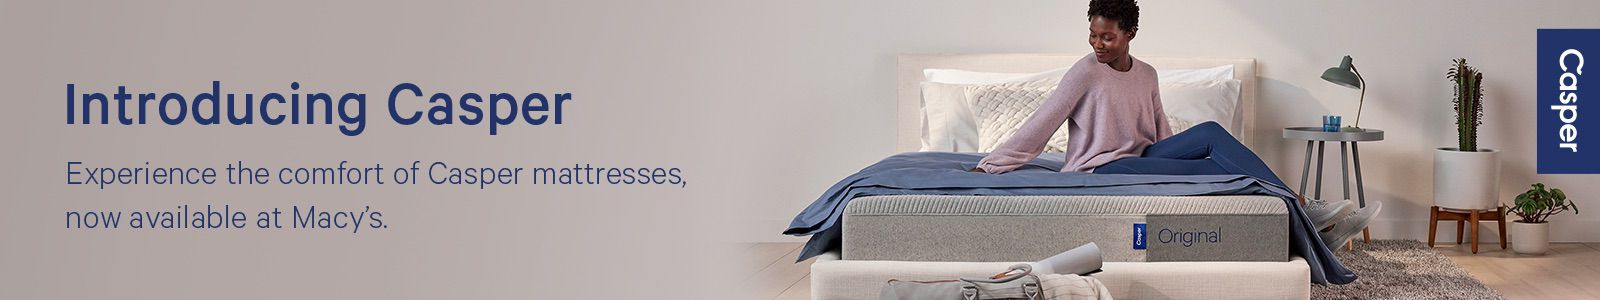 Introducing Casper, Experience the comfort of Casper mattresses, now available at Macy's